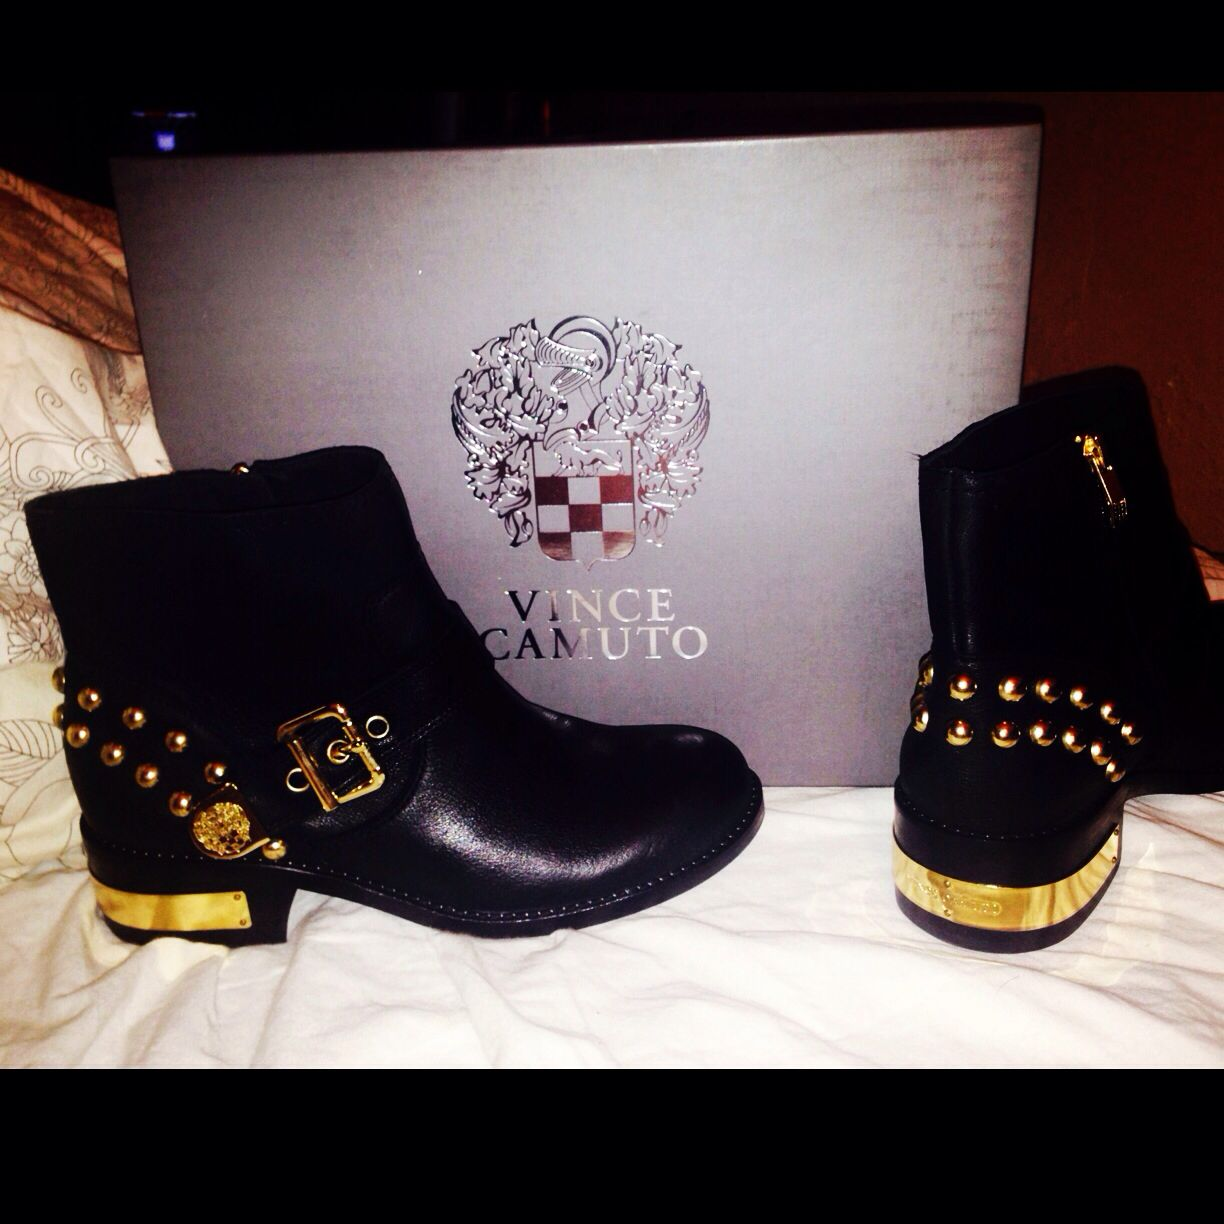 New Vince Camuto Boots | Fashionista Swag | Pinterest